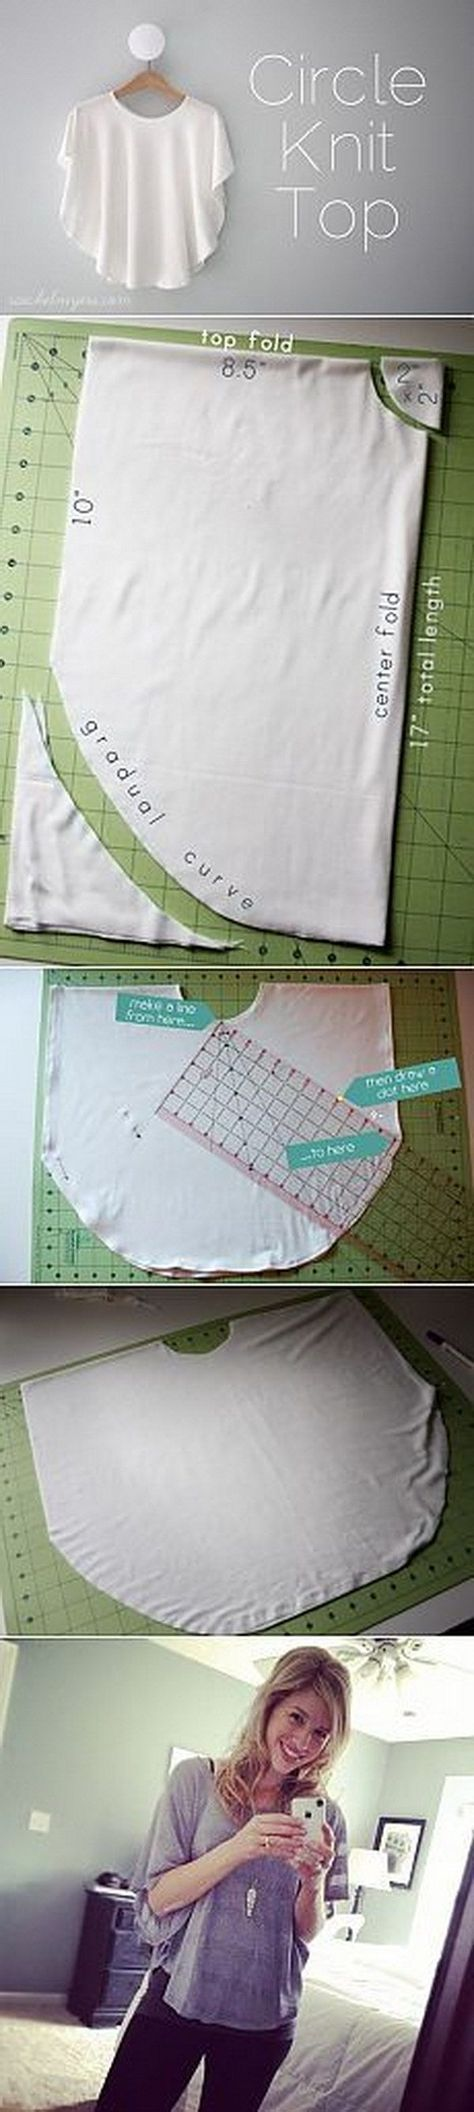 Circle Knit Shirt Tutorial saved to crafts as well